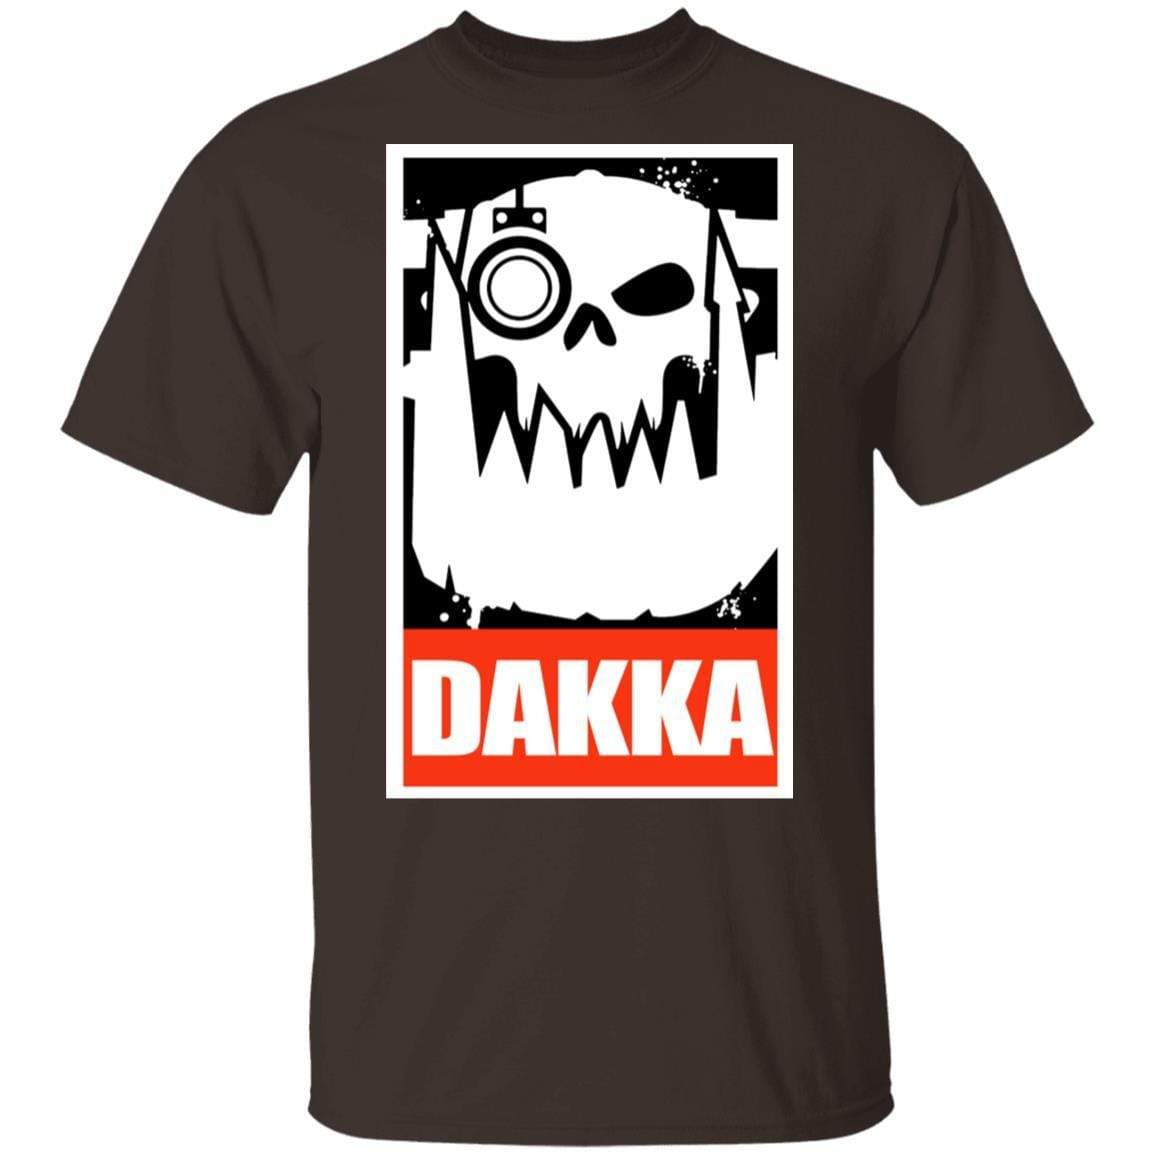 Orks Dakka Tabletop Wargaming And Miniatures Addict T-Shirts, Hoodies 1049-9956-88767417-48152 - Tee Ript